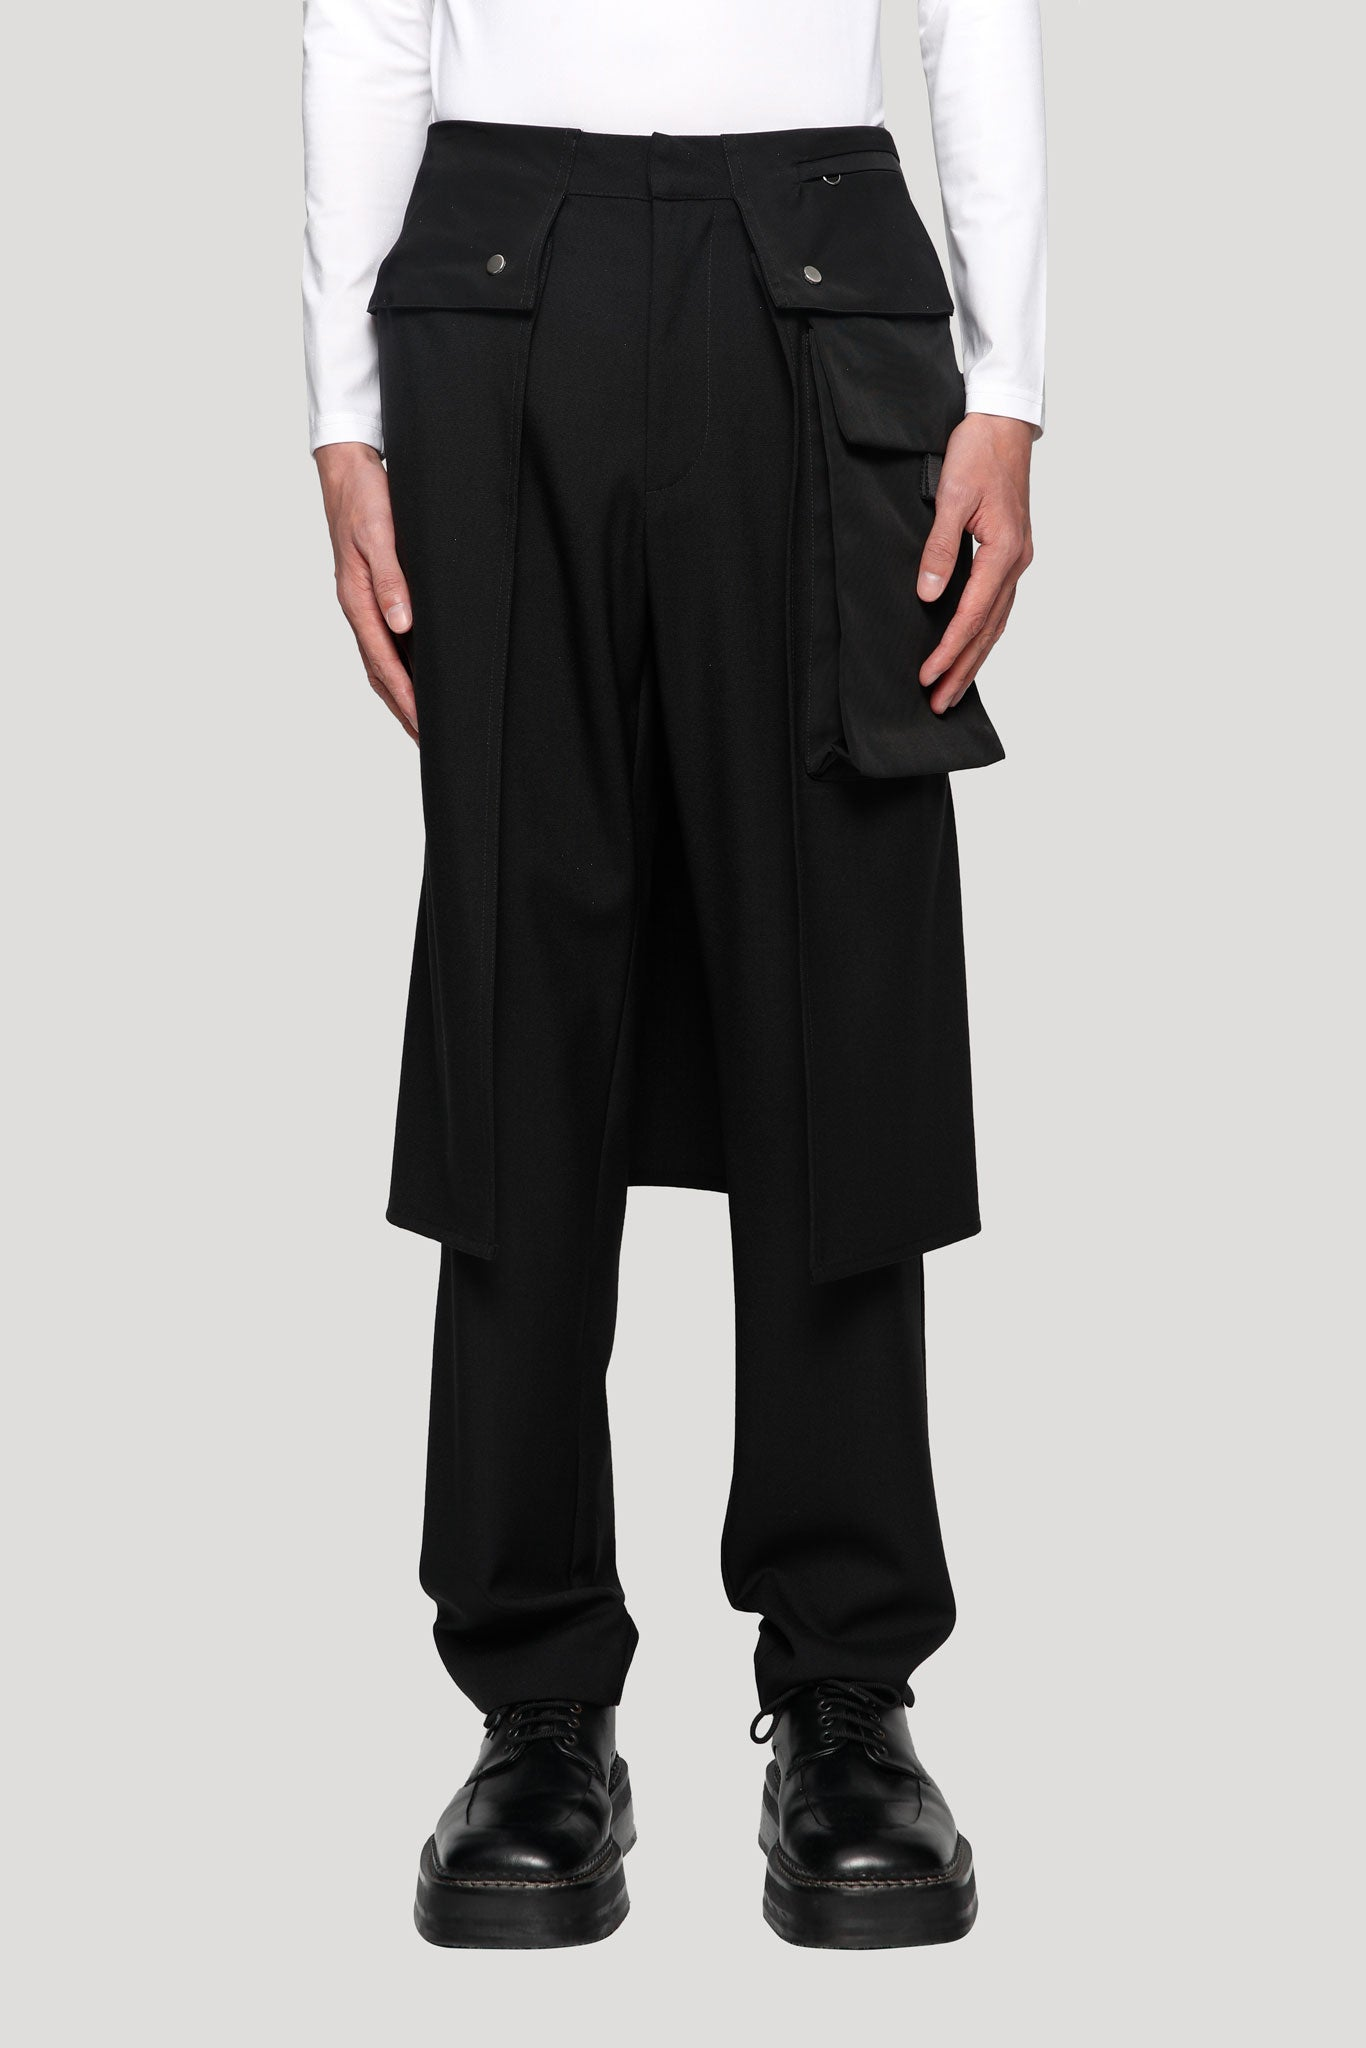 Morocco Pocket Pant Black